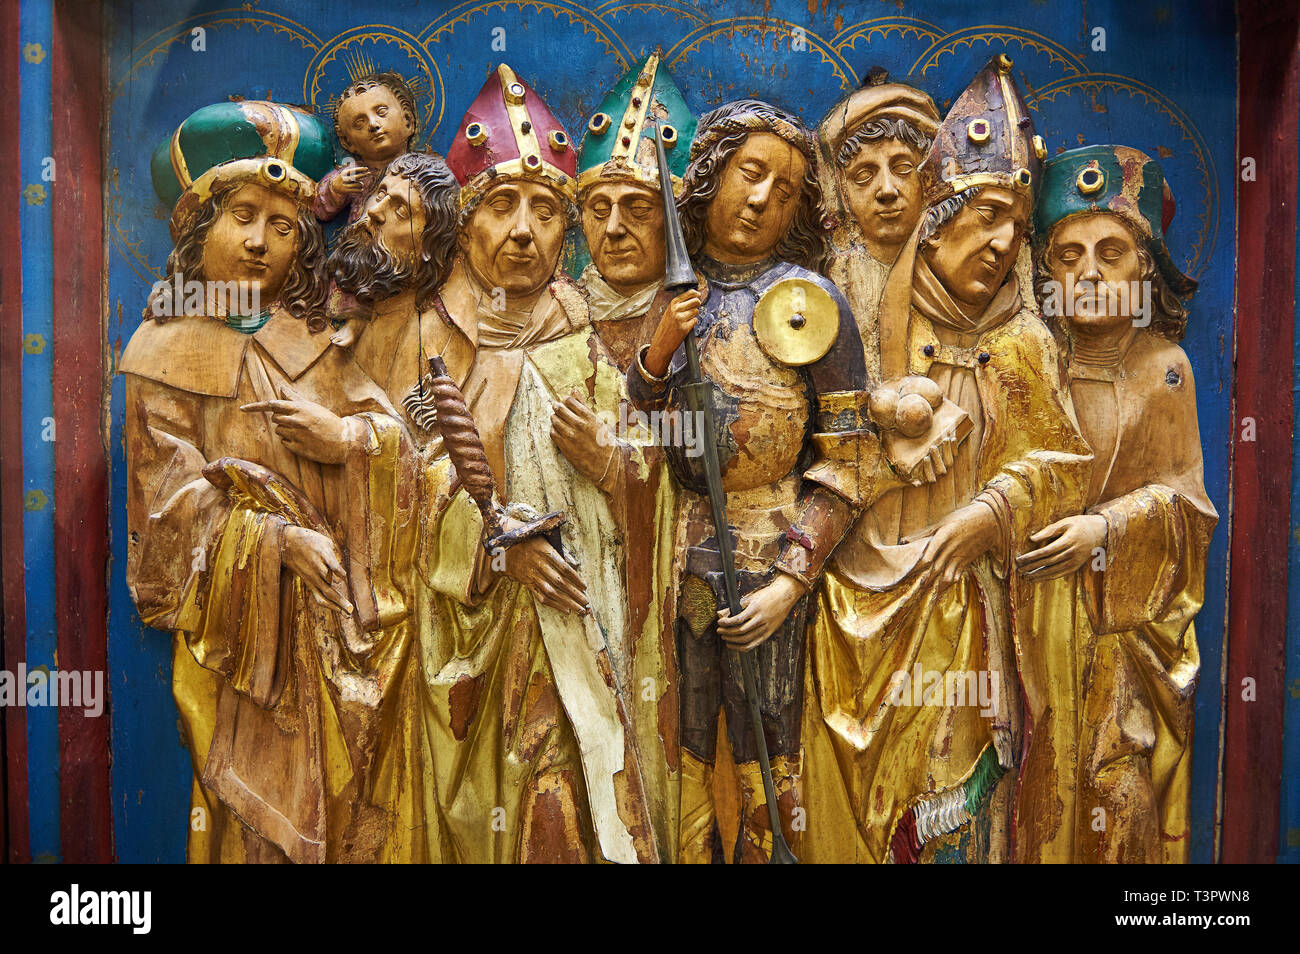 Painted Gothic wooden Fourteen Intercessors altarpiece made at the end of the 15th century in Franconia.  The panel depict 14 saints in total. Inv RF  Stock Photo